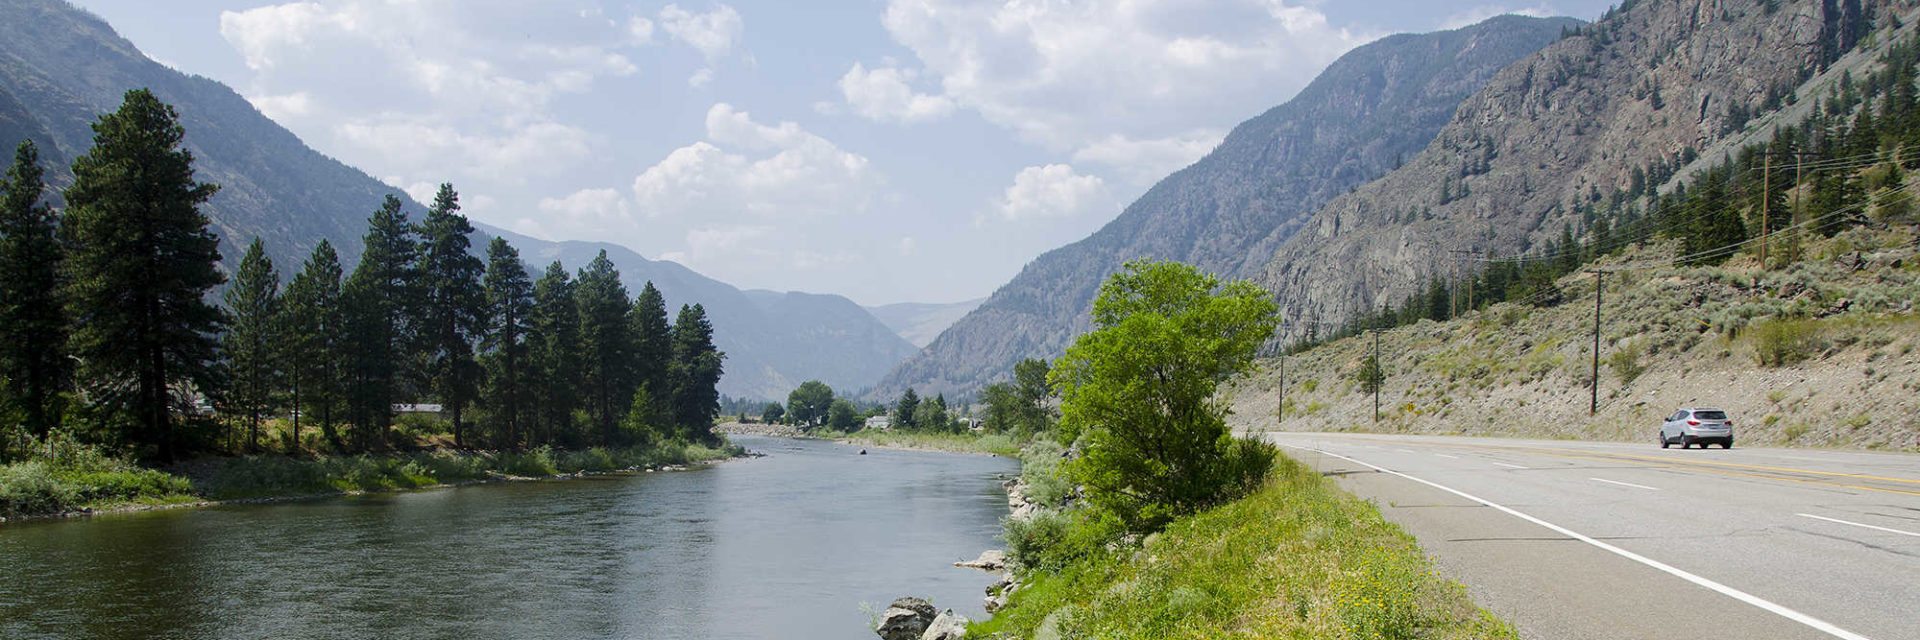 Road Trips in the Similkameen Valley